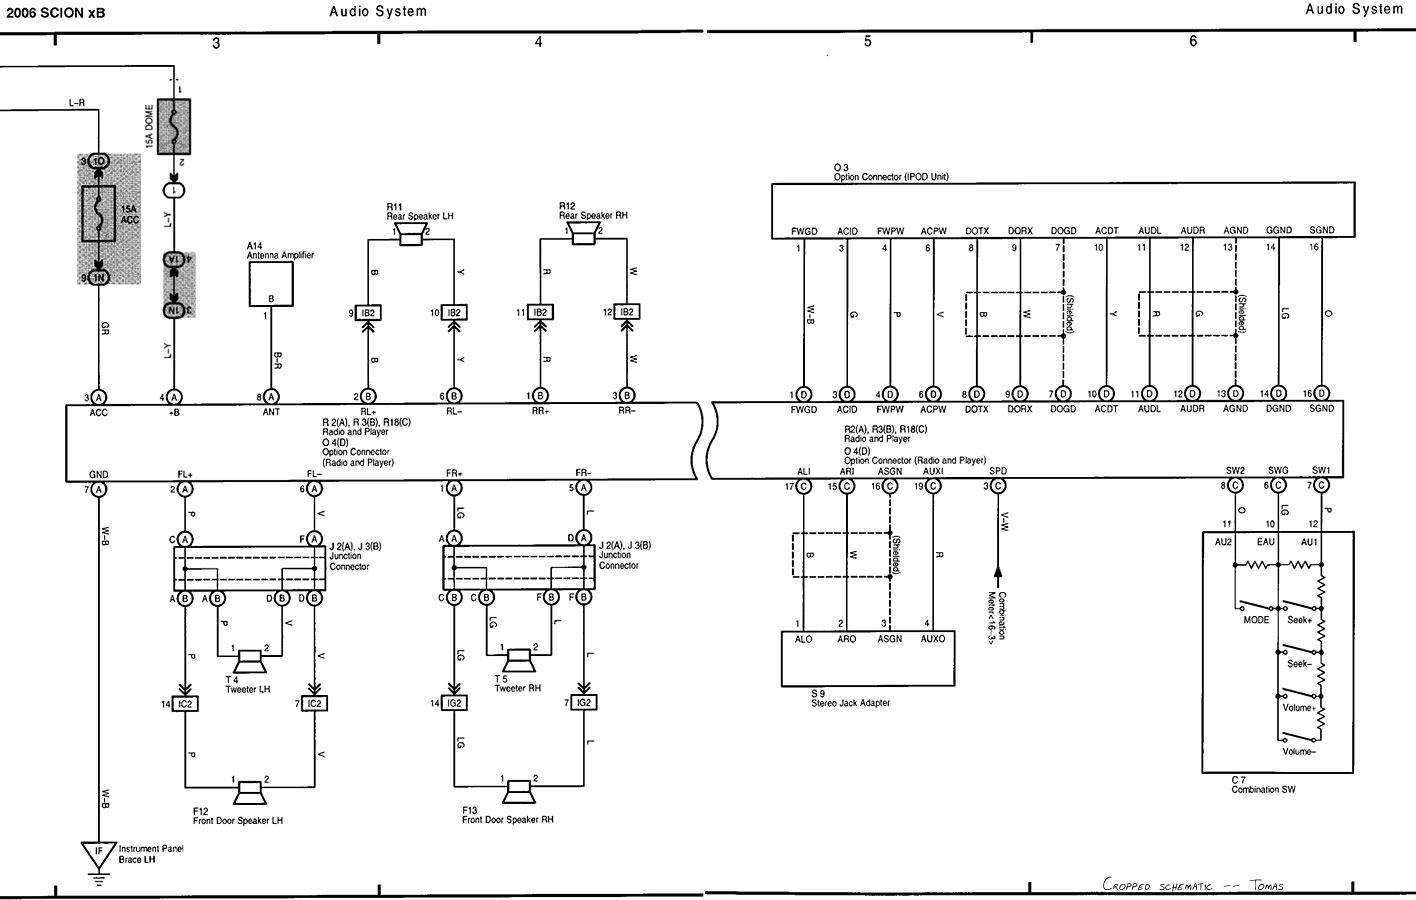 wiring diagram scion tc wiring schematics diagram rh enr green com scion xb wiring diagram 2009 scion xb wiring diagram